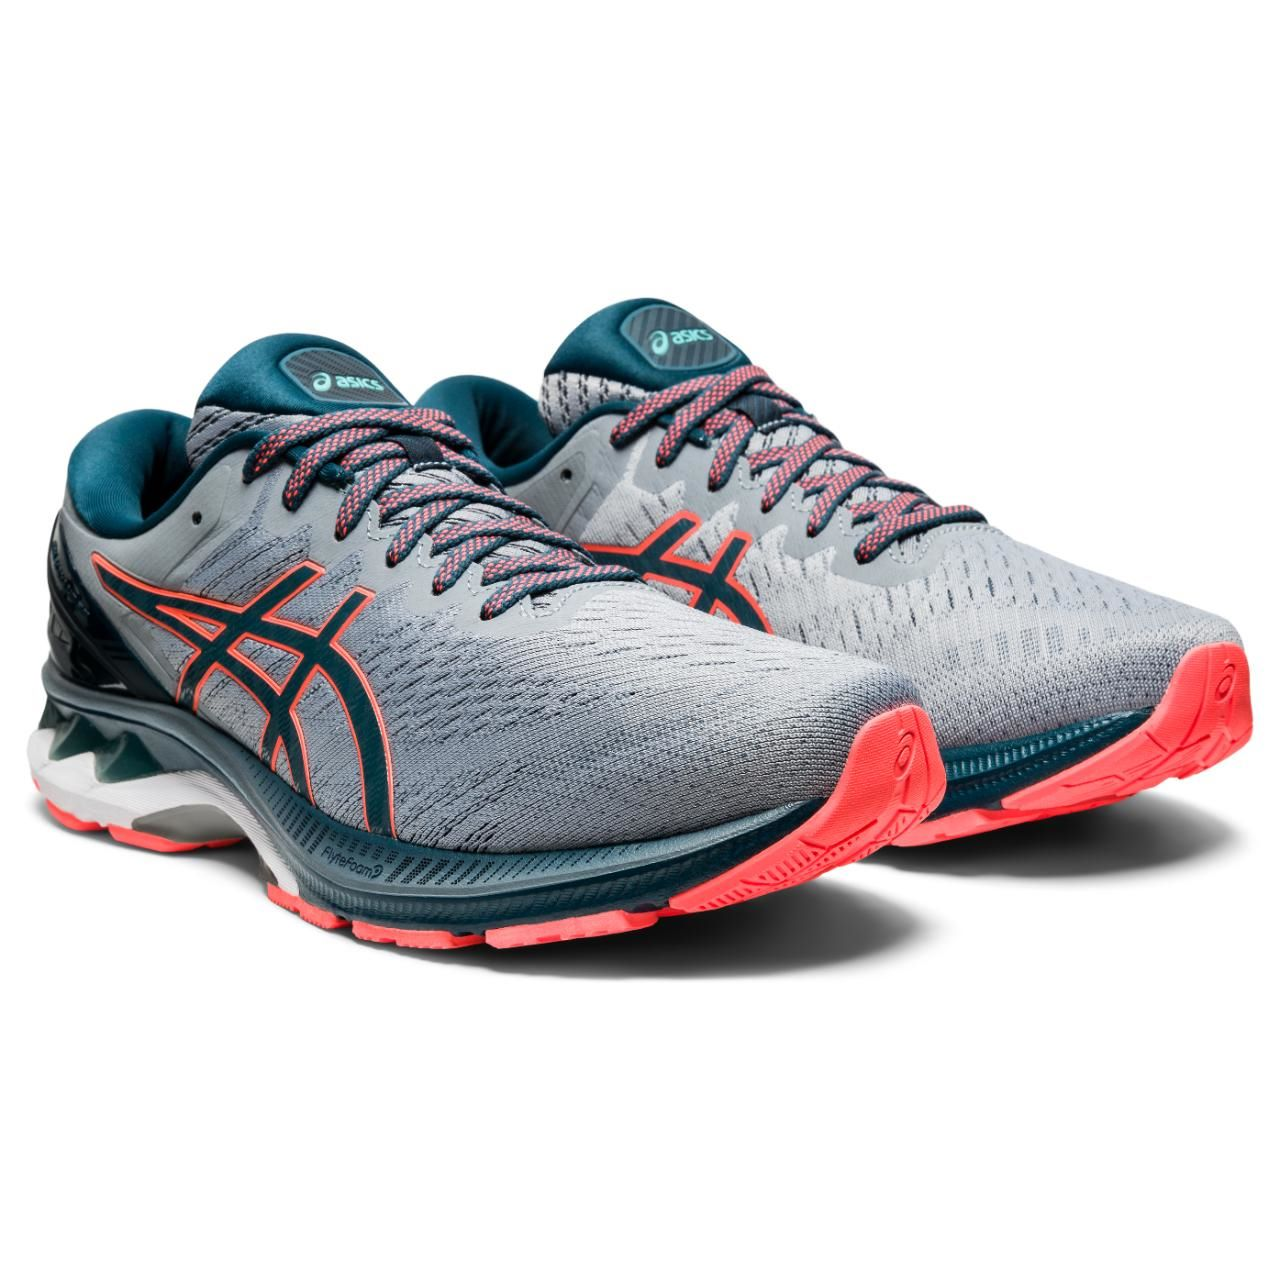 'ASICS' Men's Gel Kayano 27 - Sheet Rock / Magnetic Blue